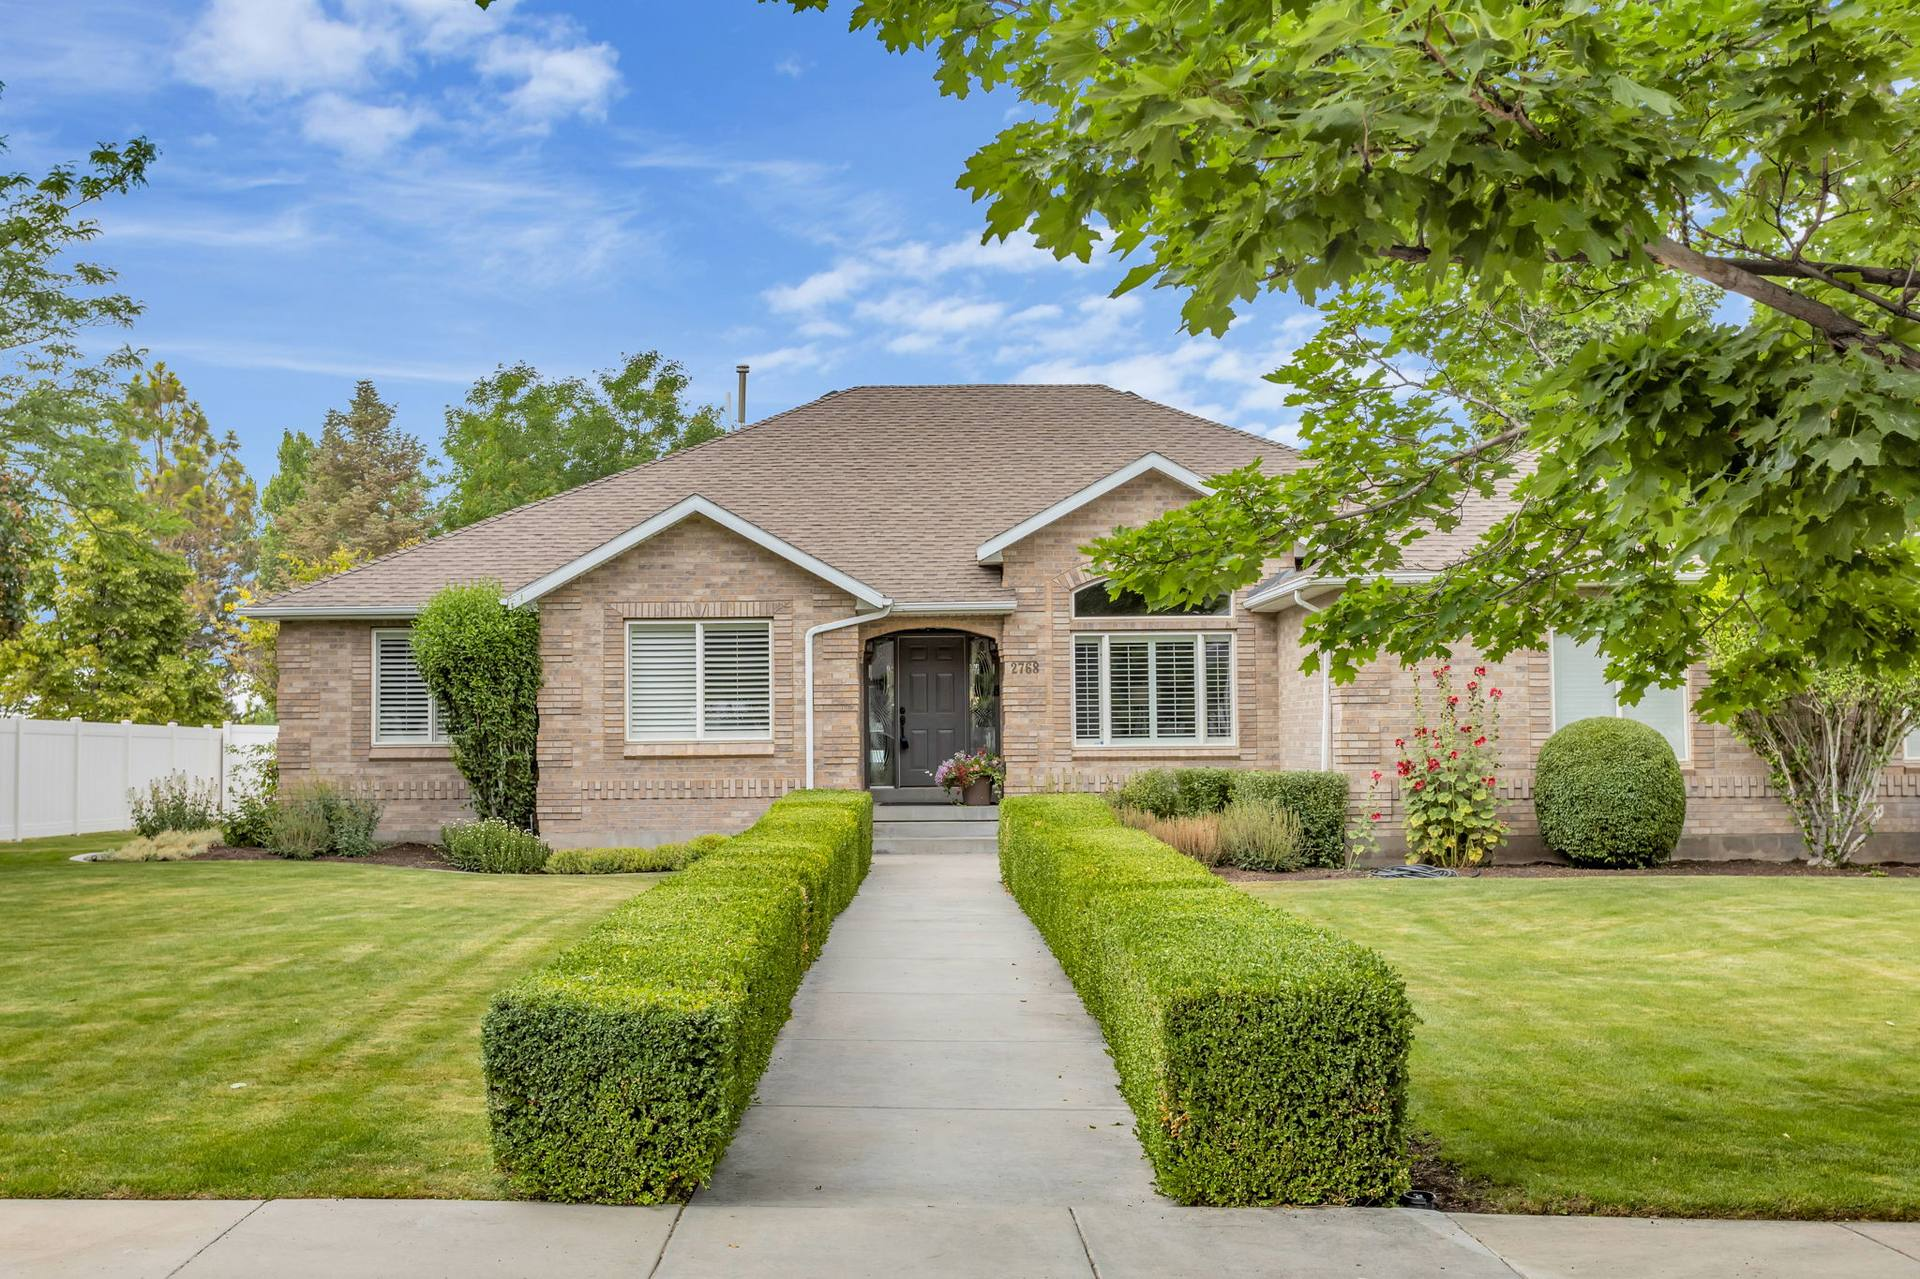 2768 Country Classic Dr, Bluffdale, UT 84065, US